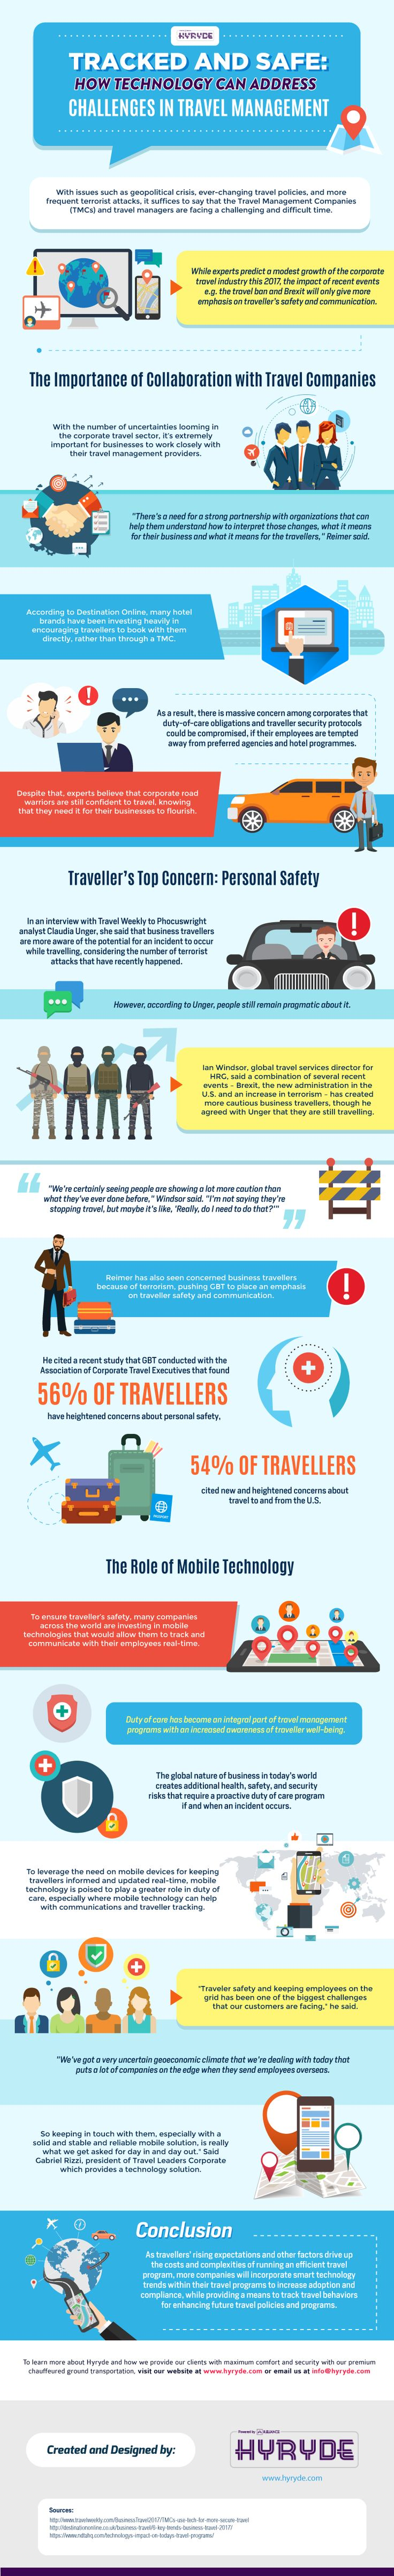 Technology Addressing Challenges in Travel Management